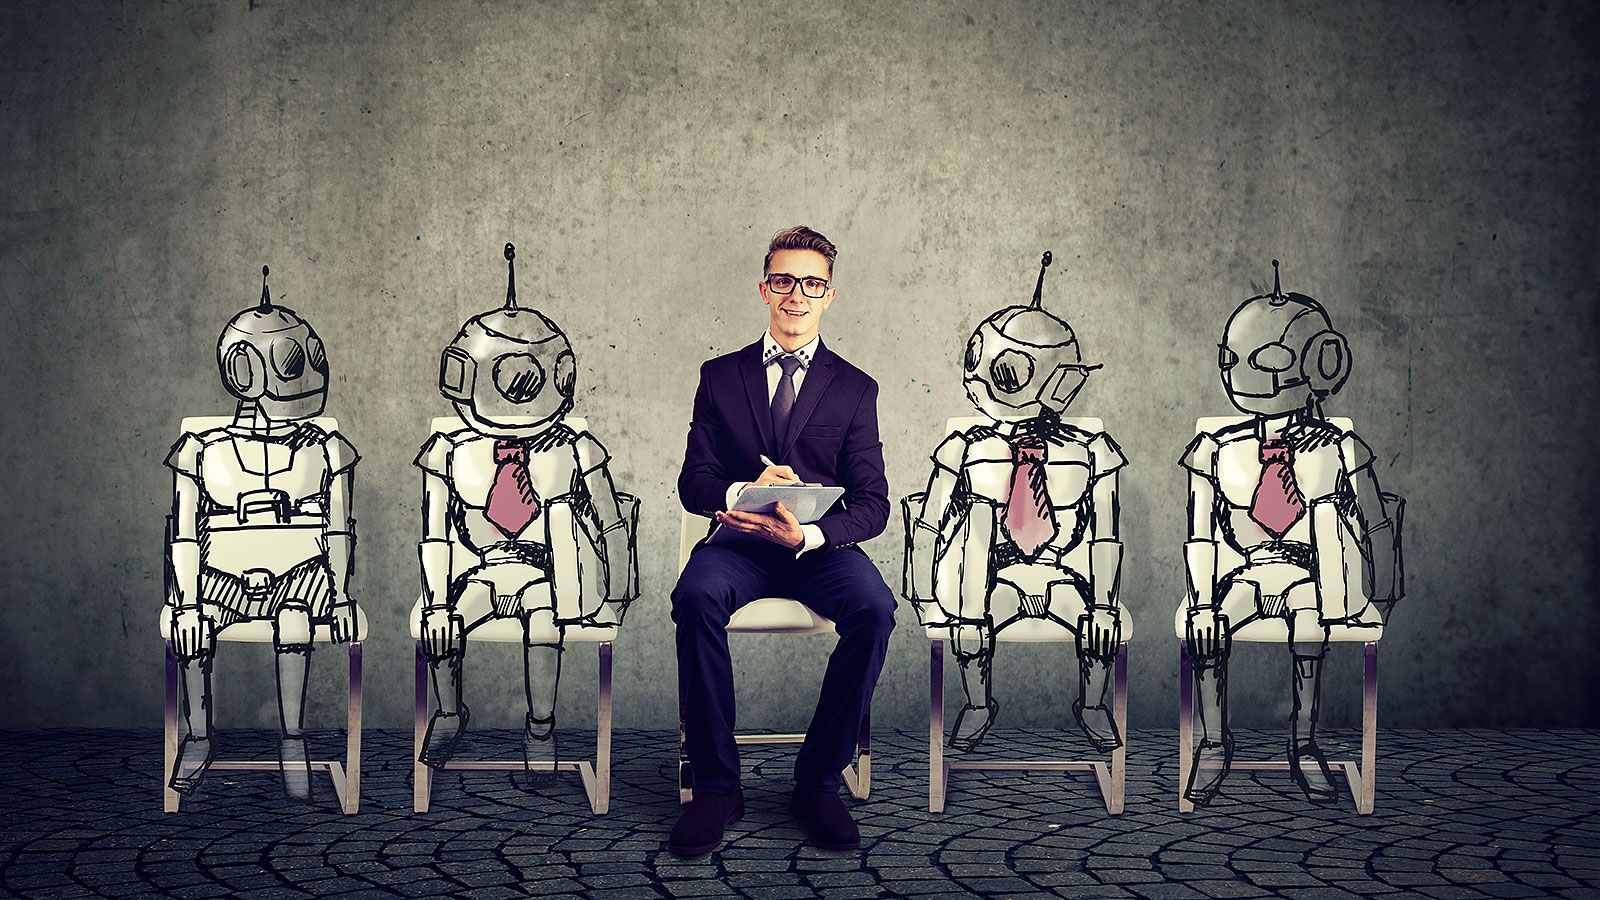 4 ways you can stand out in the job market that AI can't